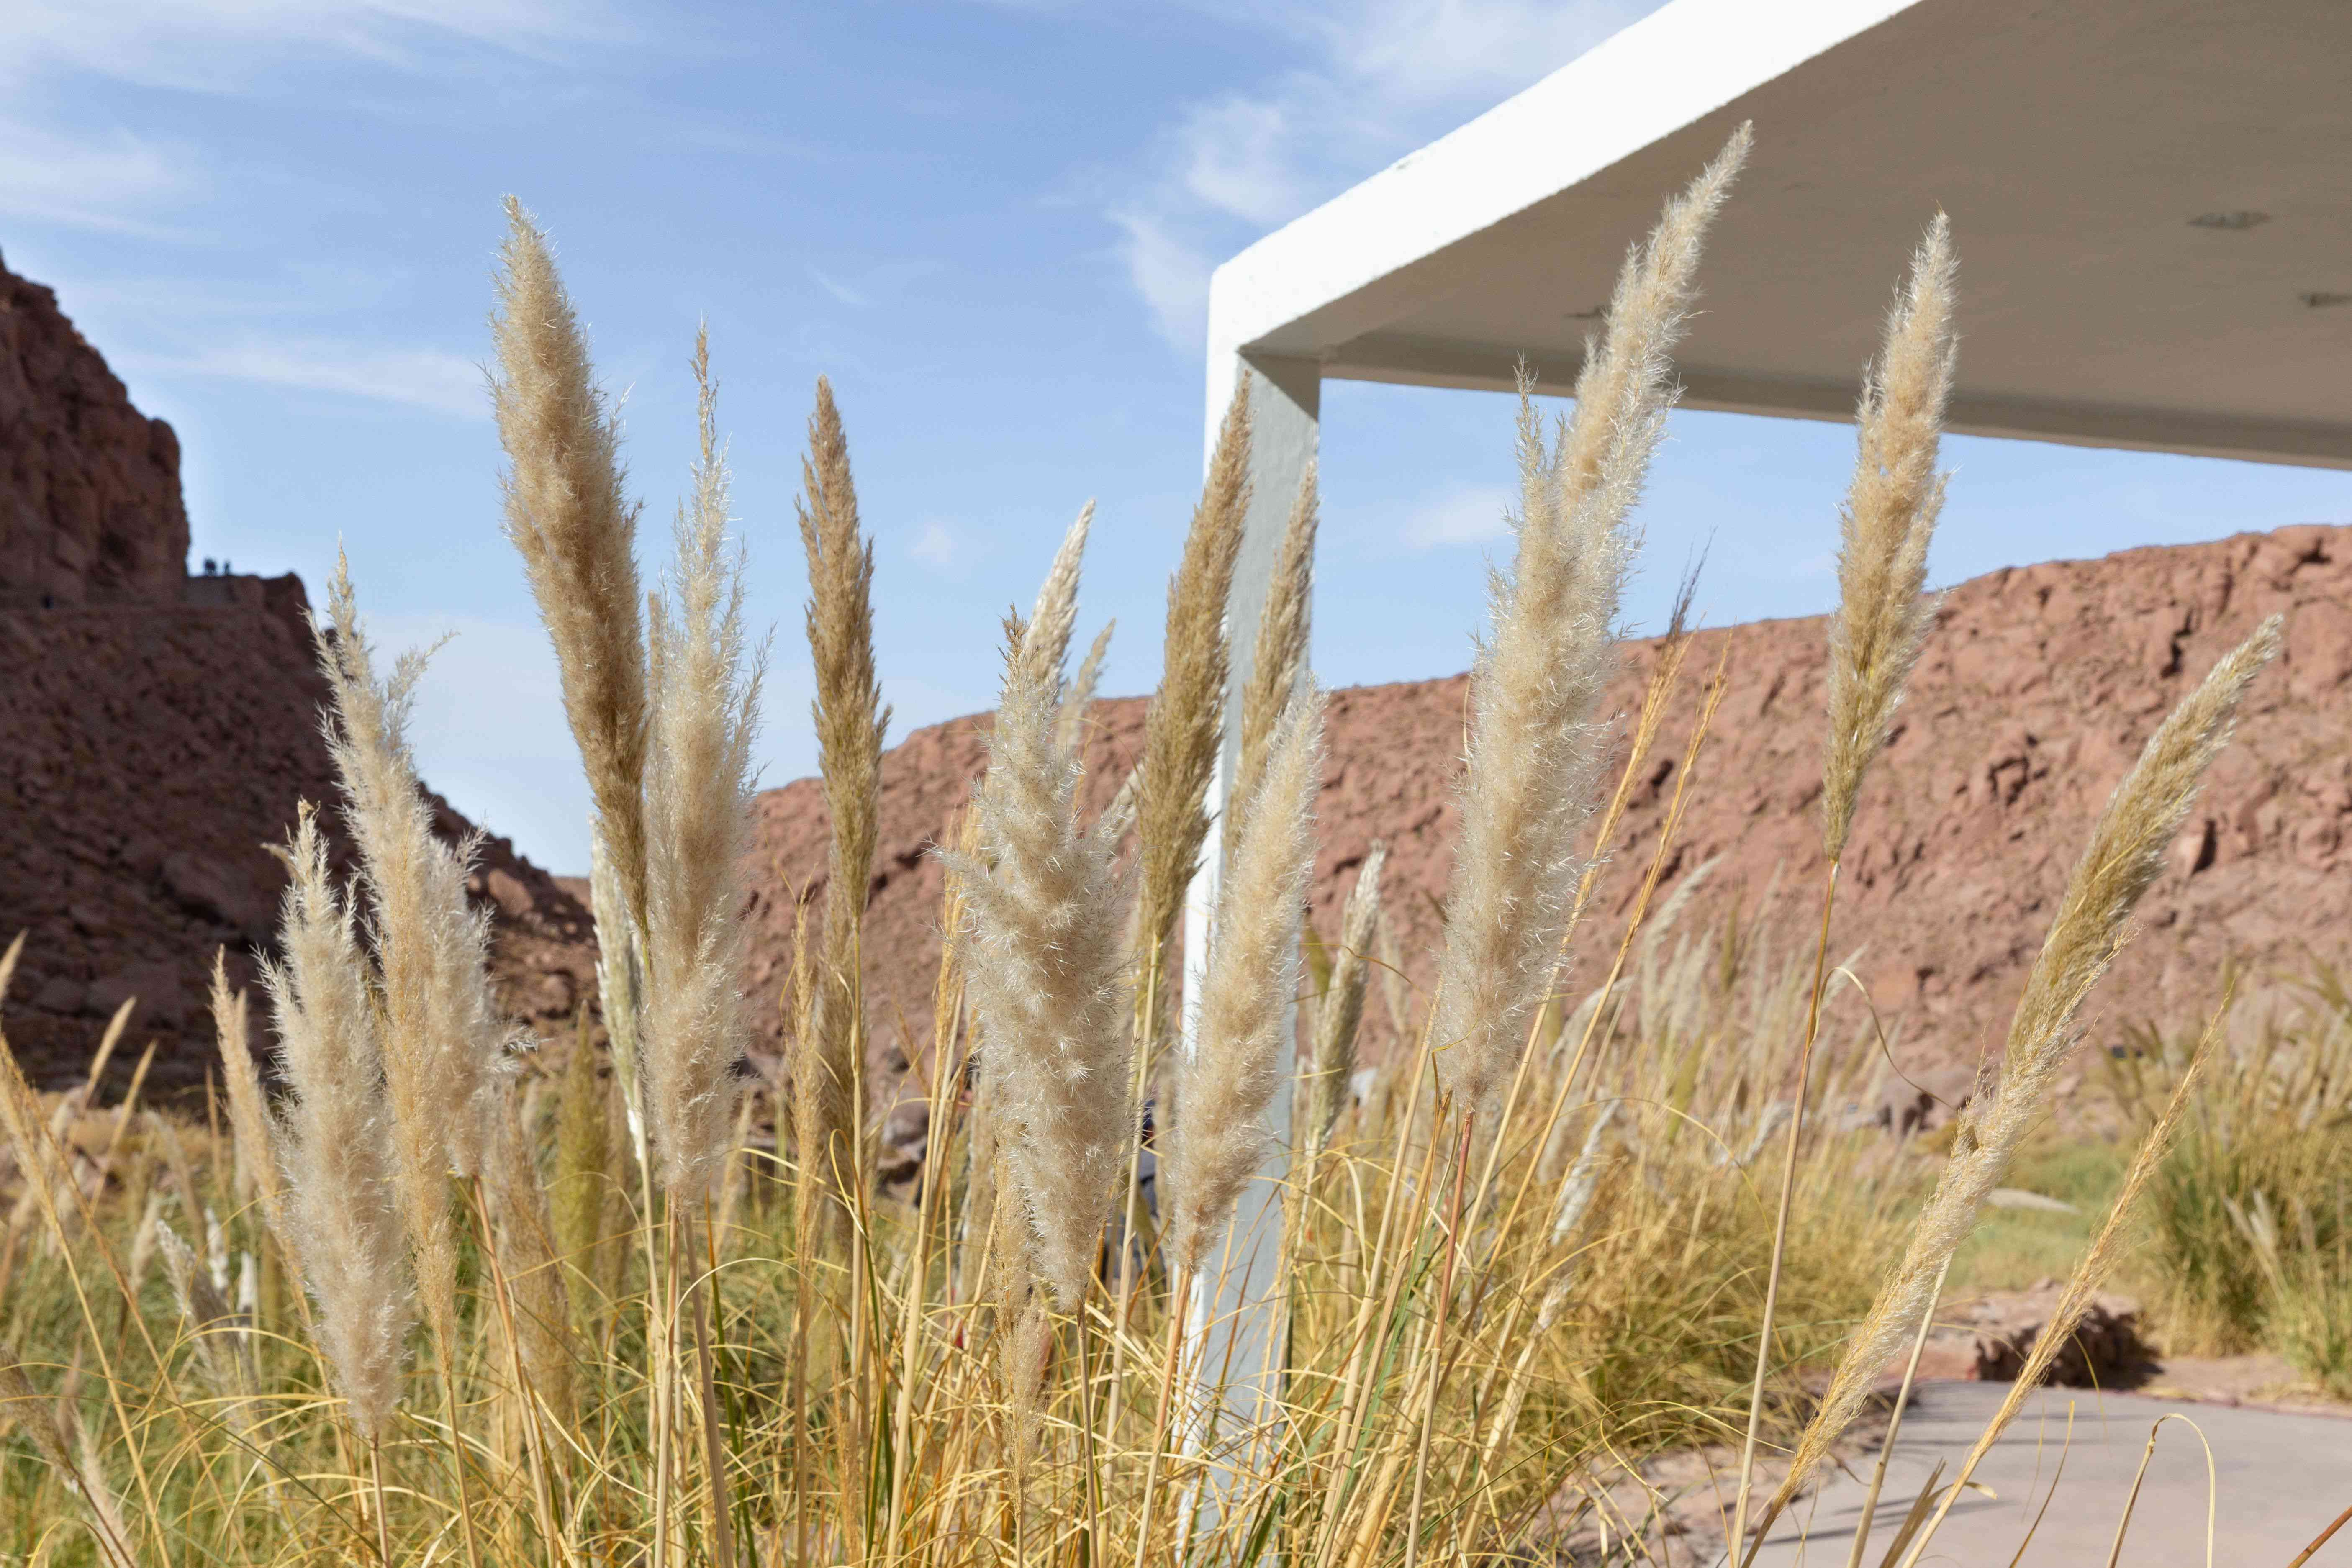 Tall ornamental grass with cream feathery plumes outside white covered patio in desert